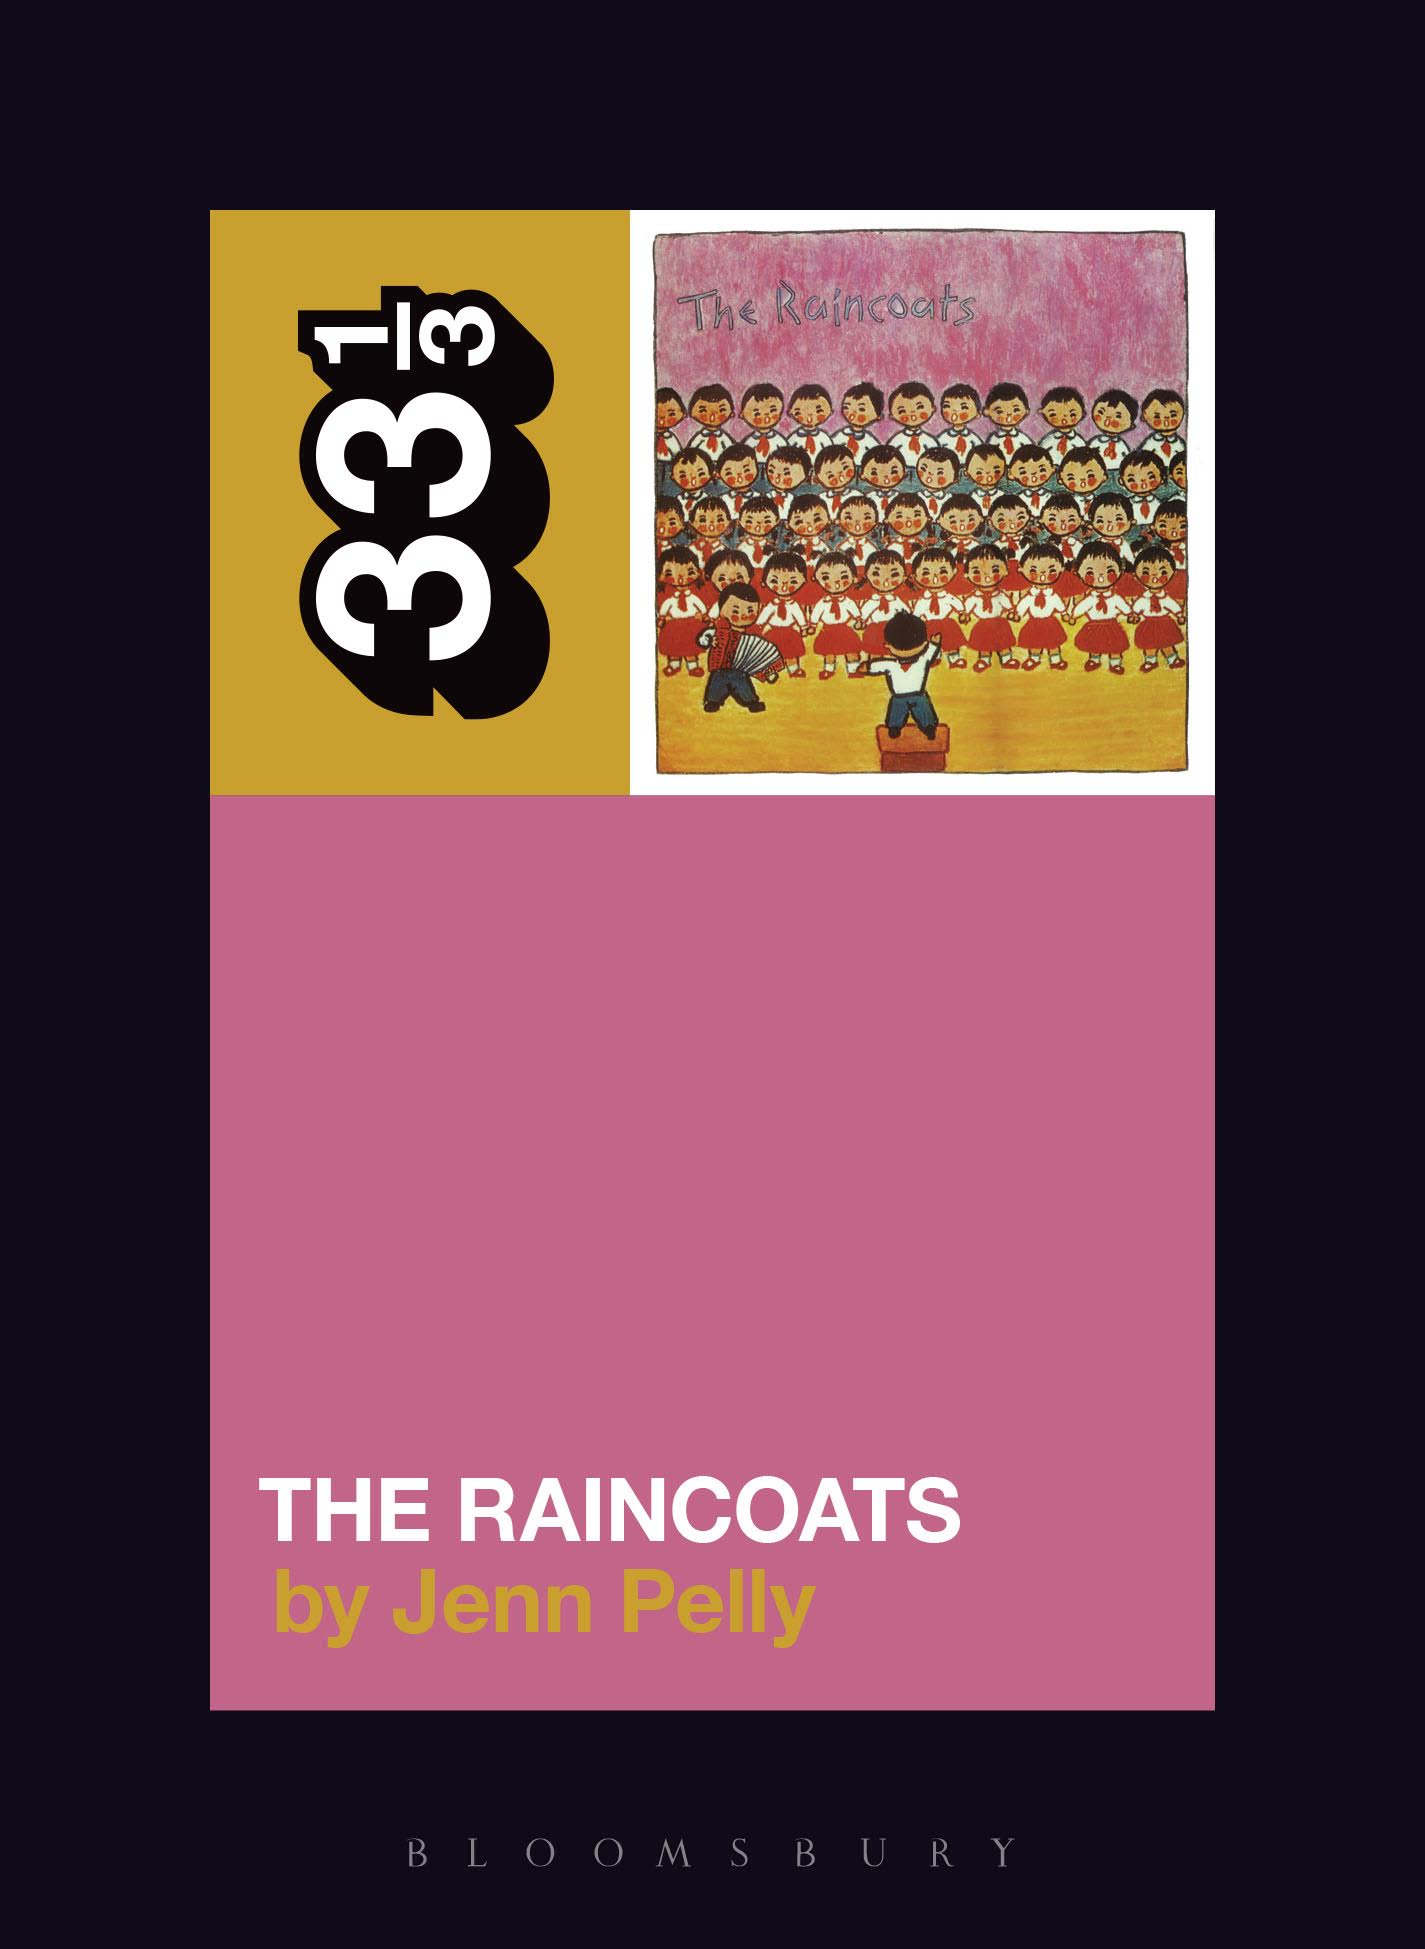 The raincoats 33 1 3